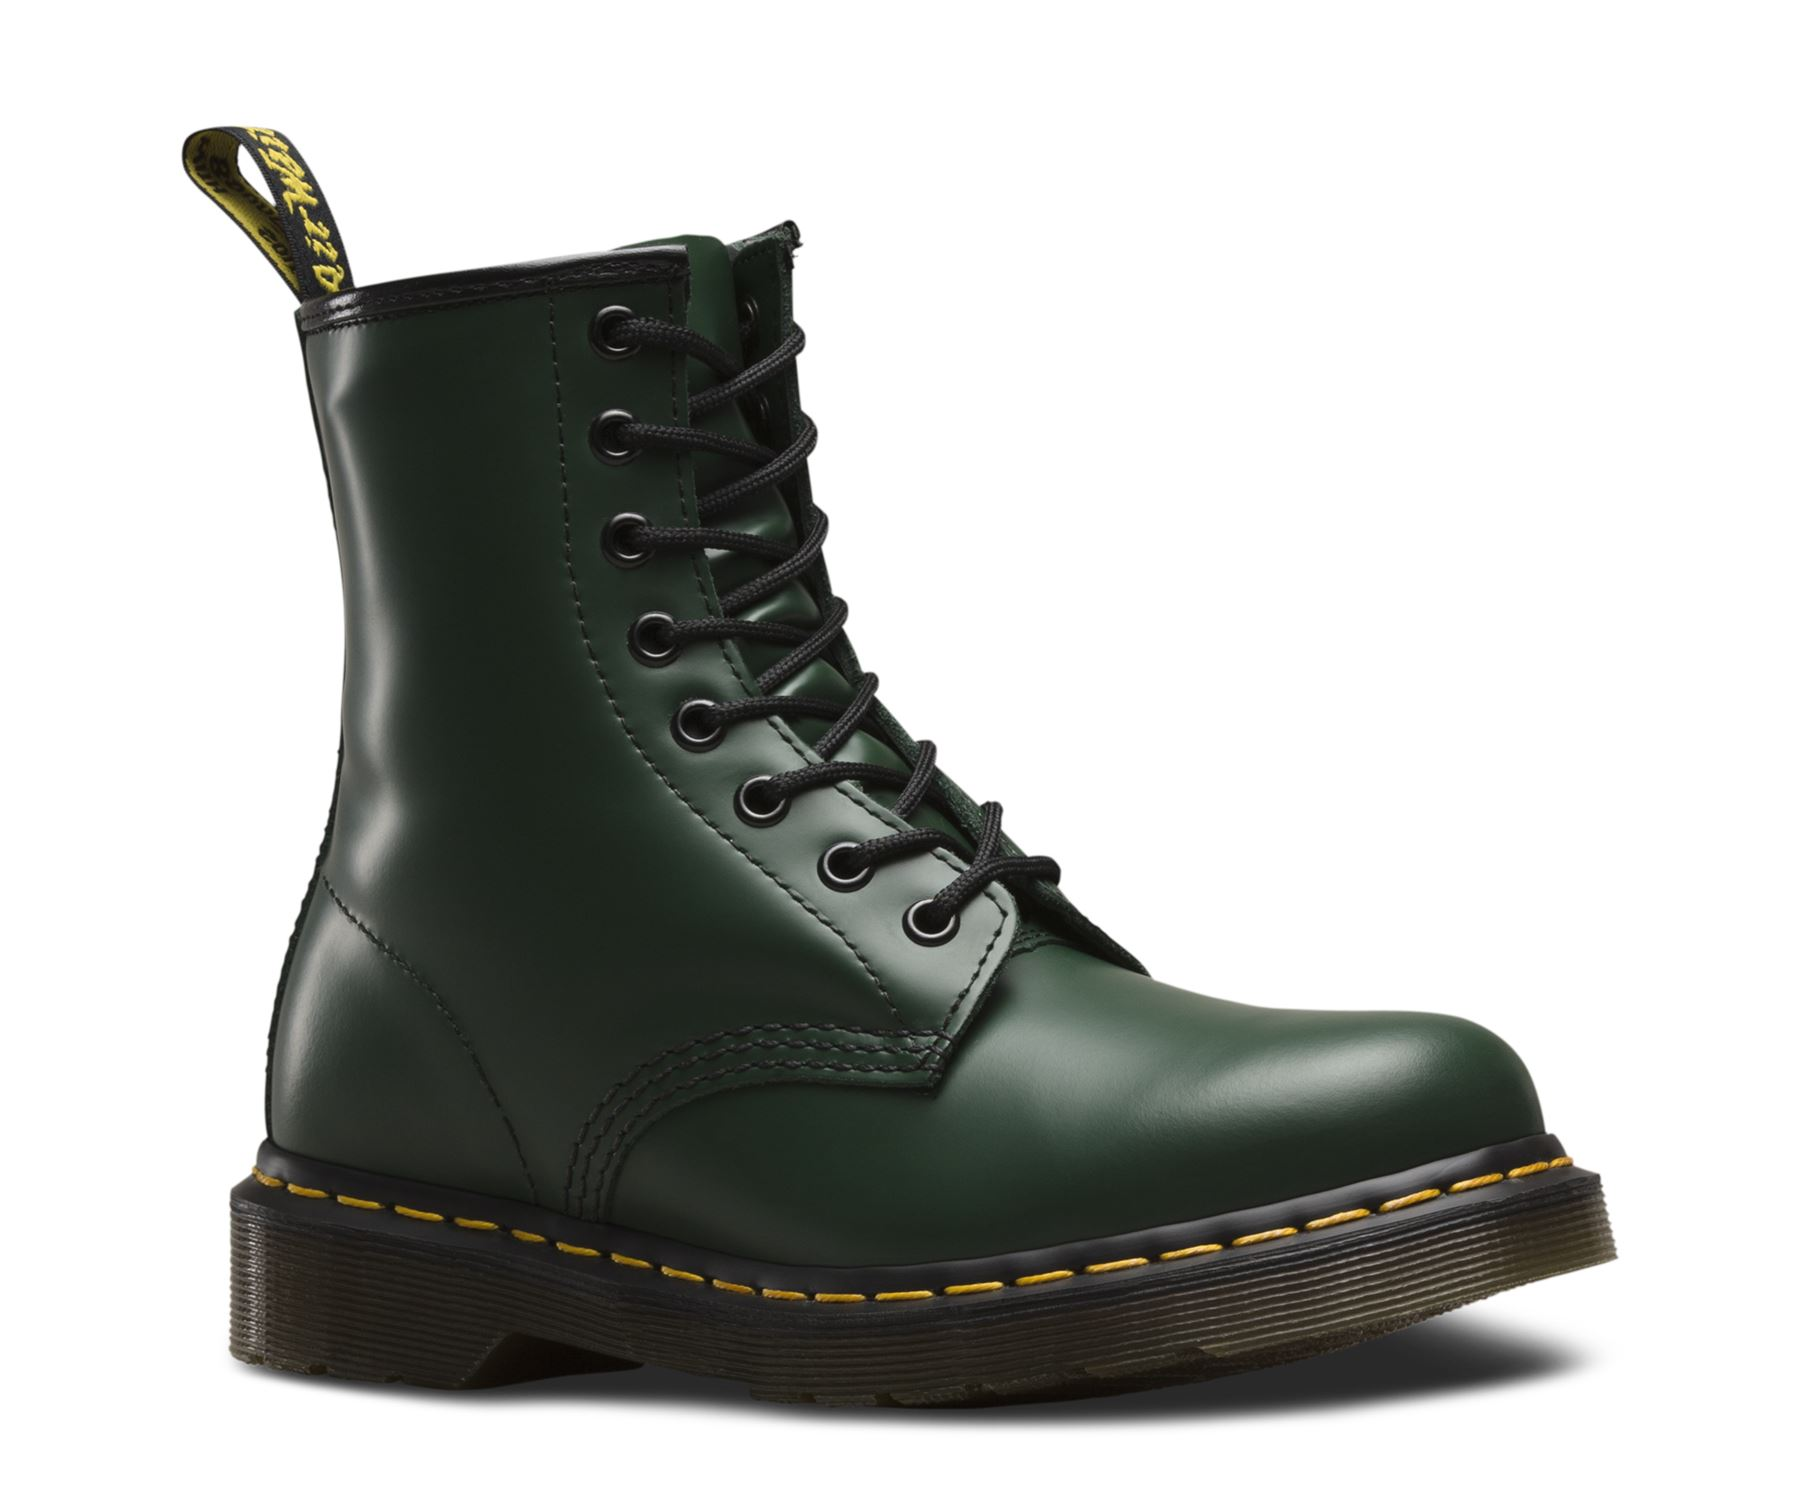 dr martens unisex 1460 green classic smooth leather 8 eye ankle doc boots ebay. Black Bedroom Furniture Sets. Home Design Ideas